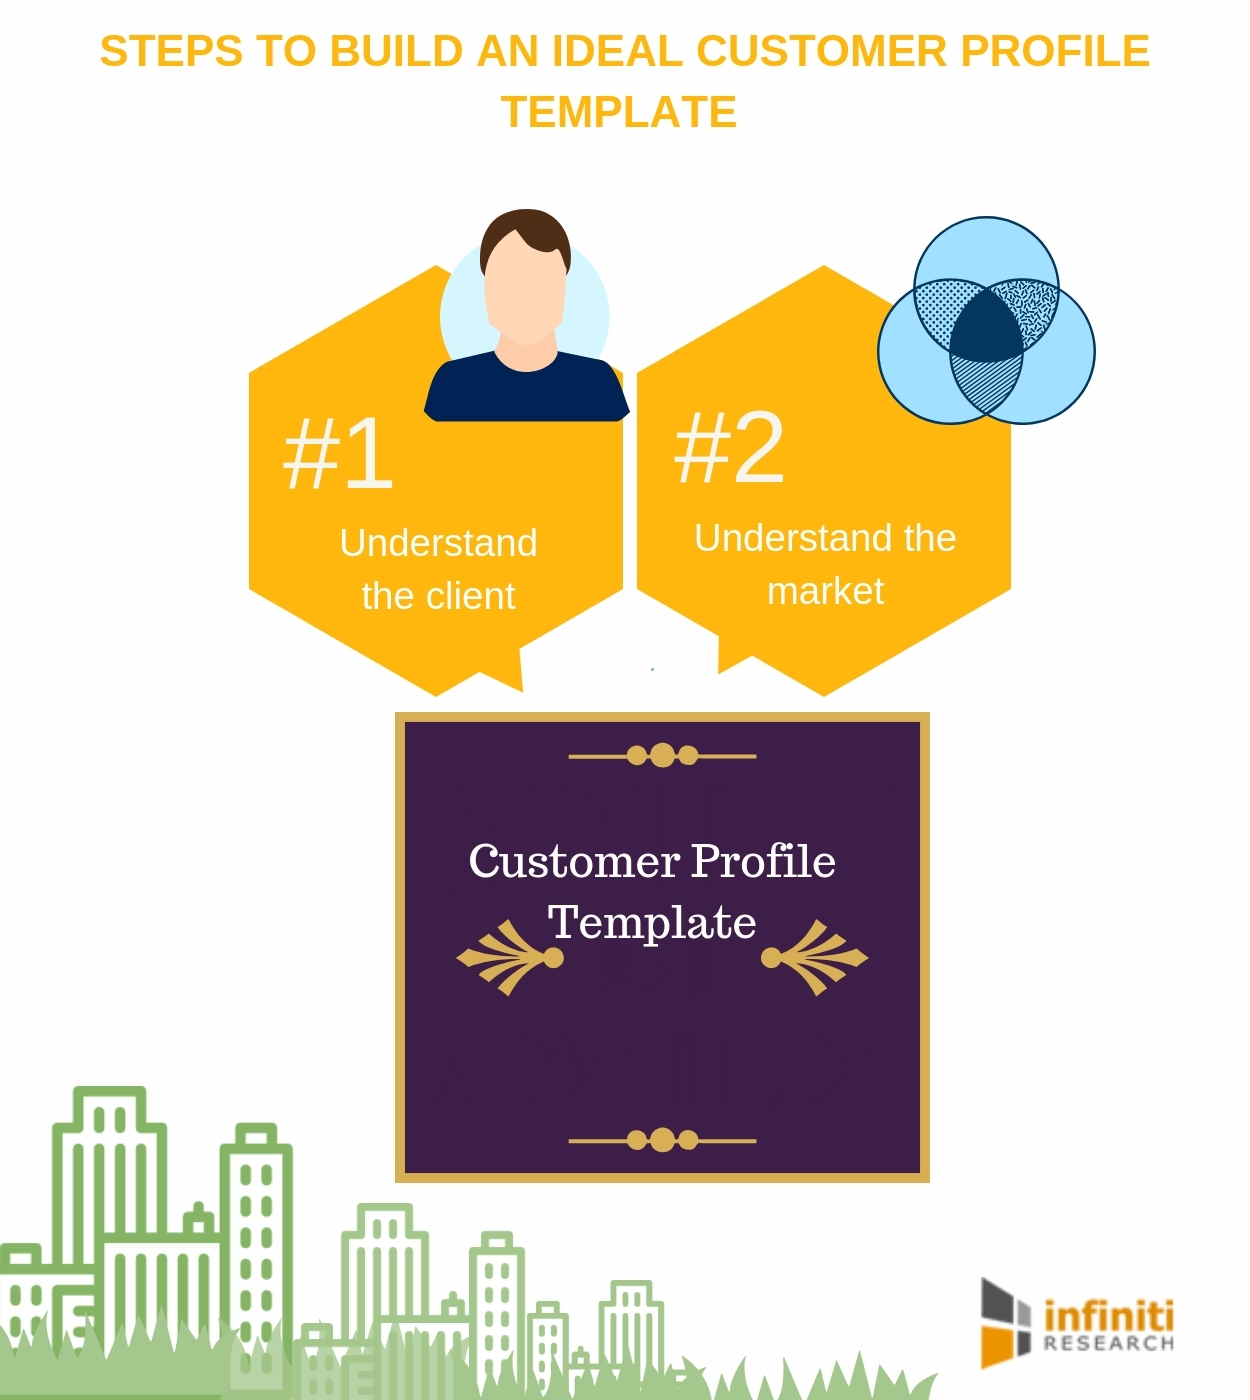 Infiniti Research Reveals The Steps To Build An Ideal Customer Profile Template Business Wire